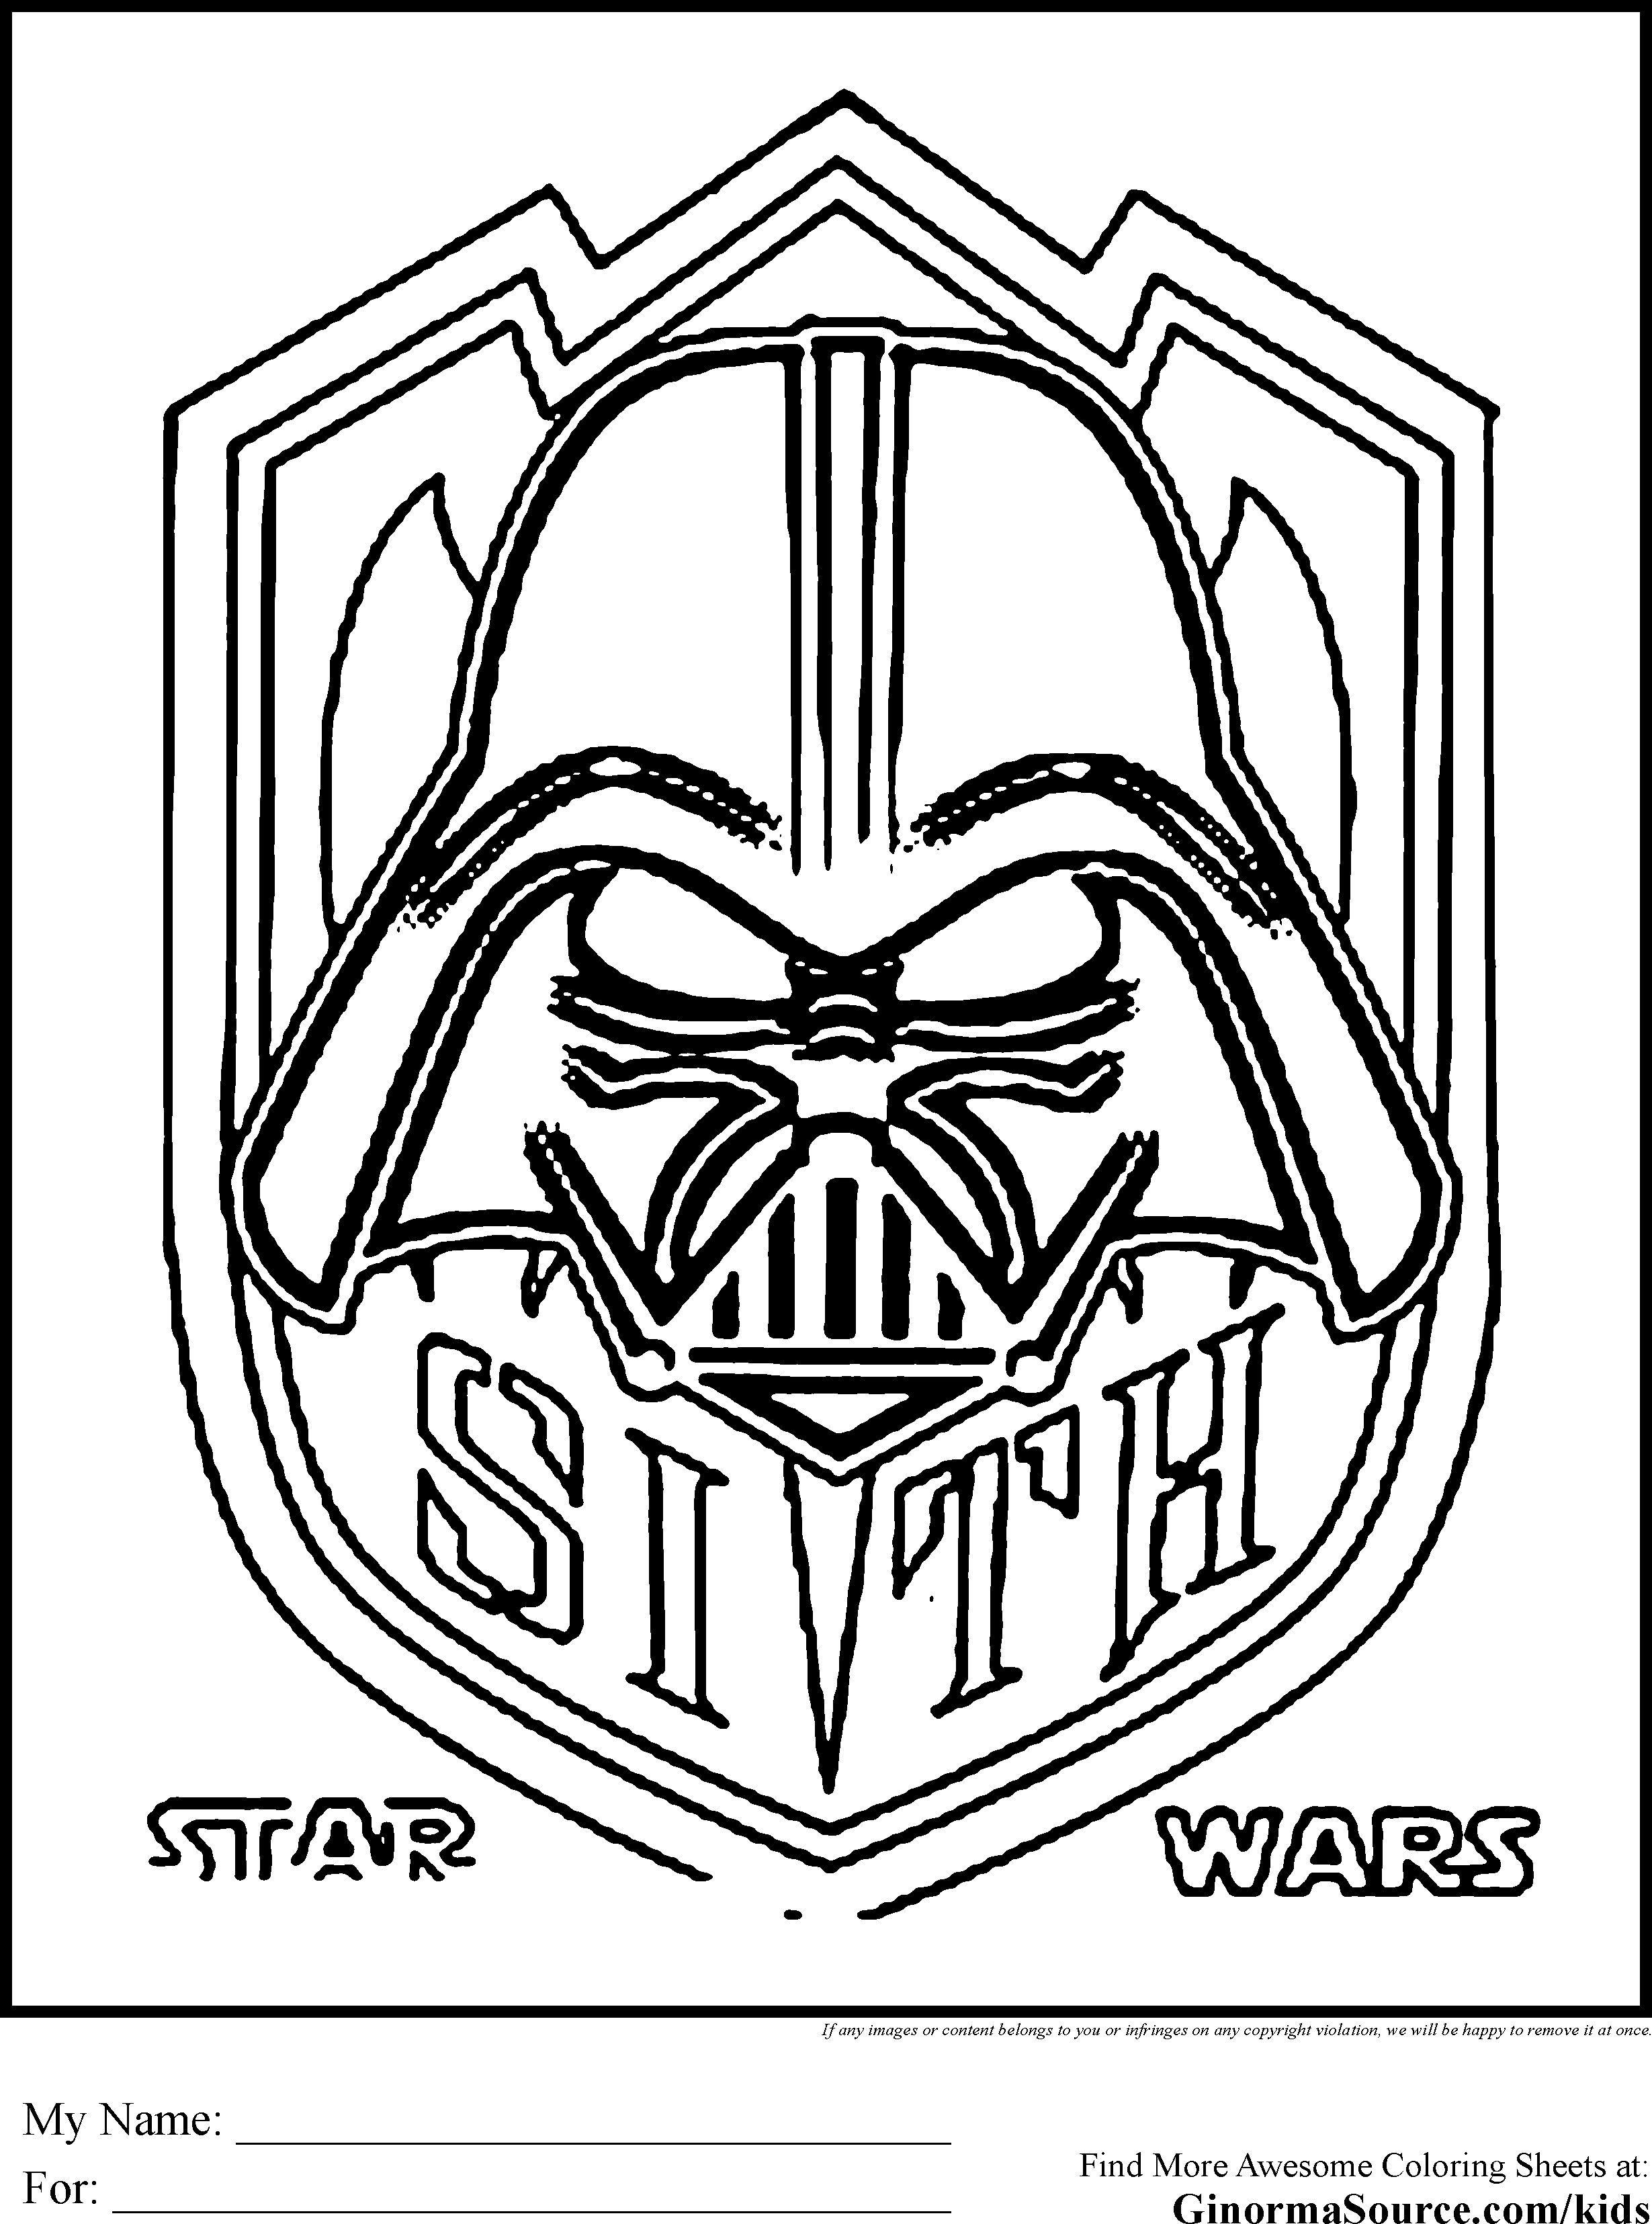 Starwars Coloring Pages New Star Wars Coloring Pages Sith Coloring Pages Pinterest Free Entitlementtrap Com Star Coloring Pages Star Wars Coloring Sheet Coloring Pages For Kids